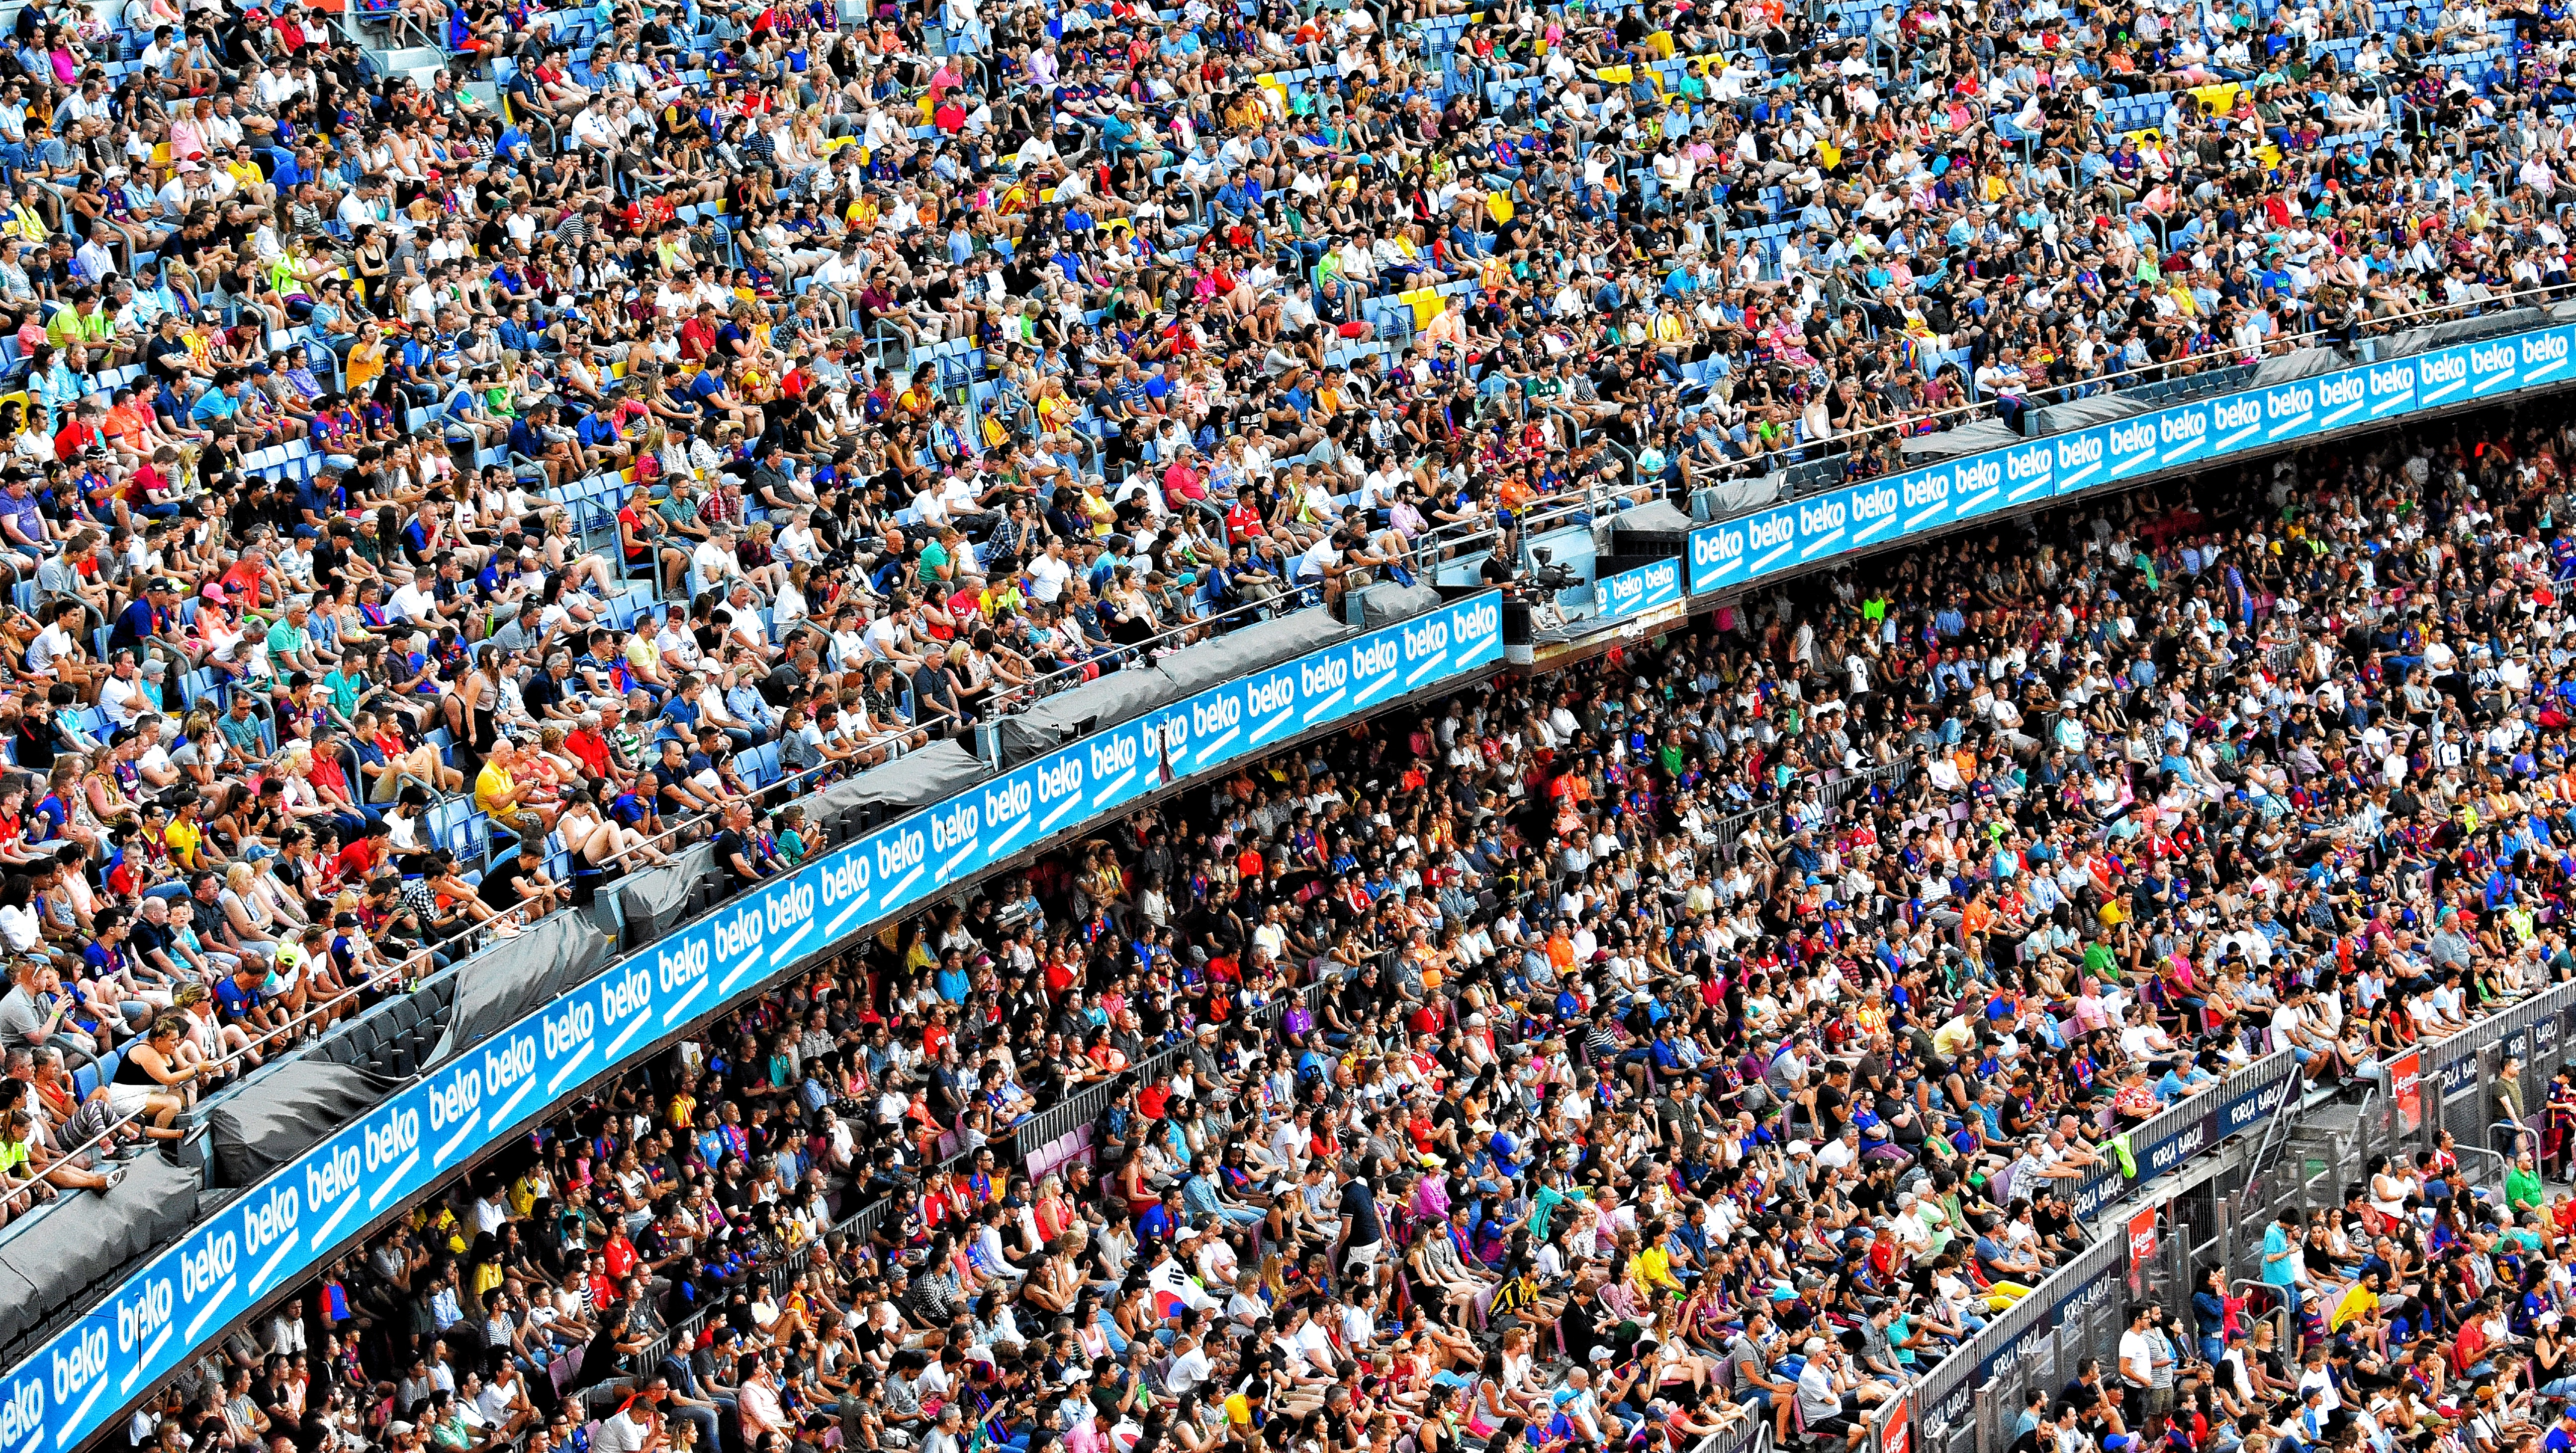 Crowded stadium filled with fans at a sporting event.